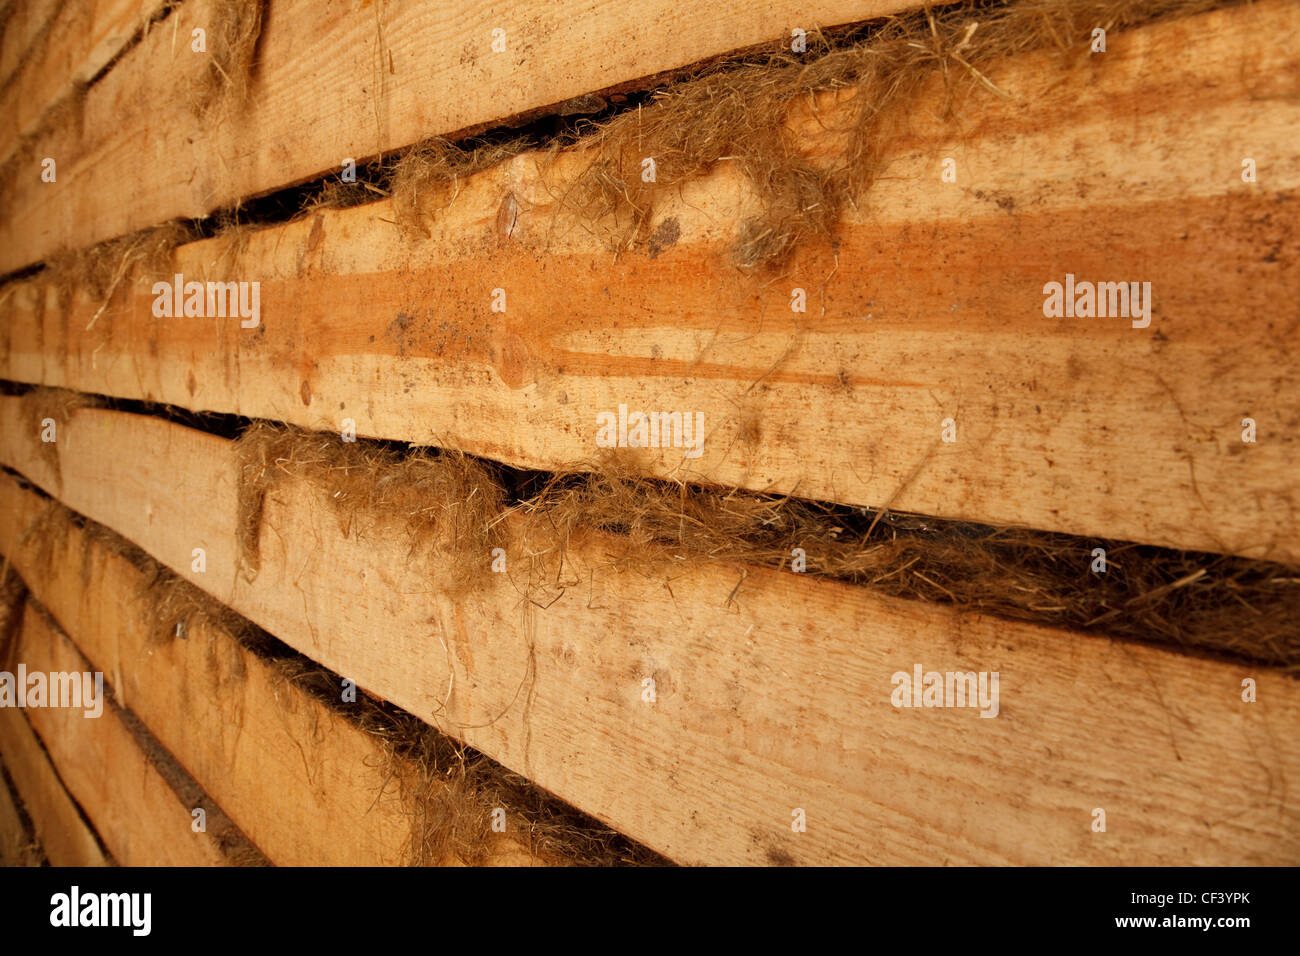 Wall of barn of rough planks with oakum receding into distance. Horizontal format. - Stock Image